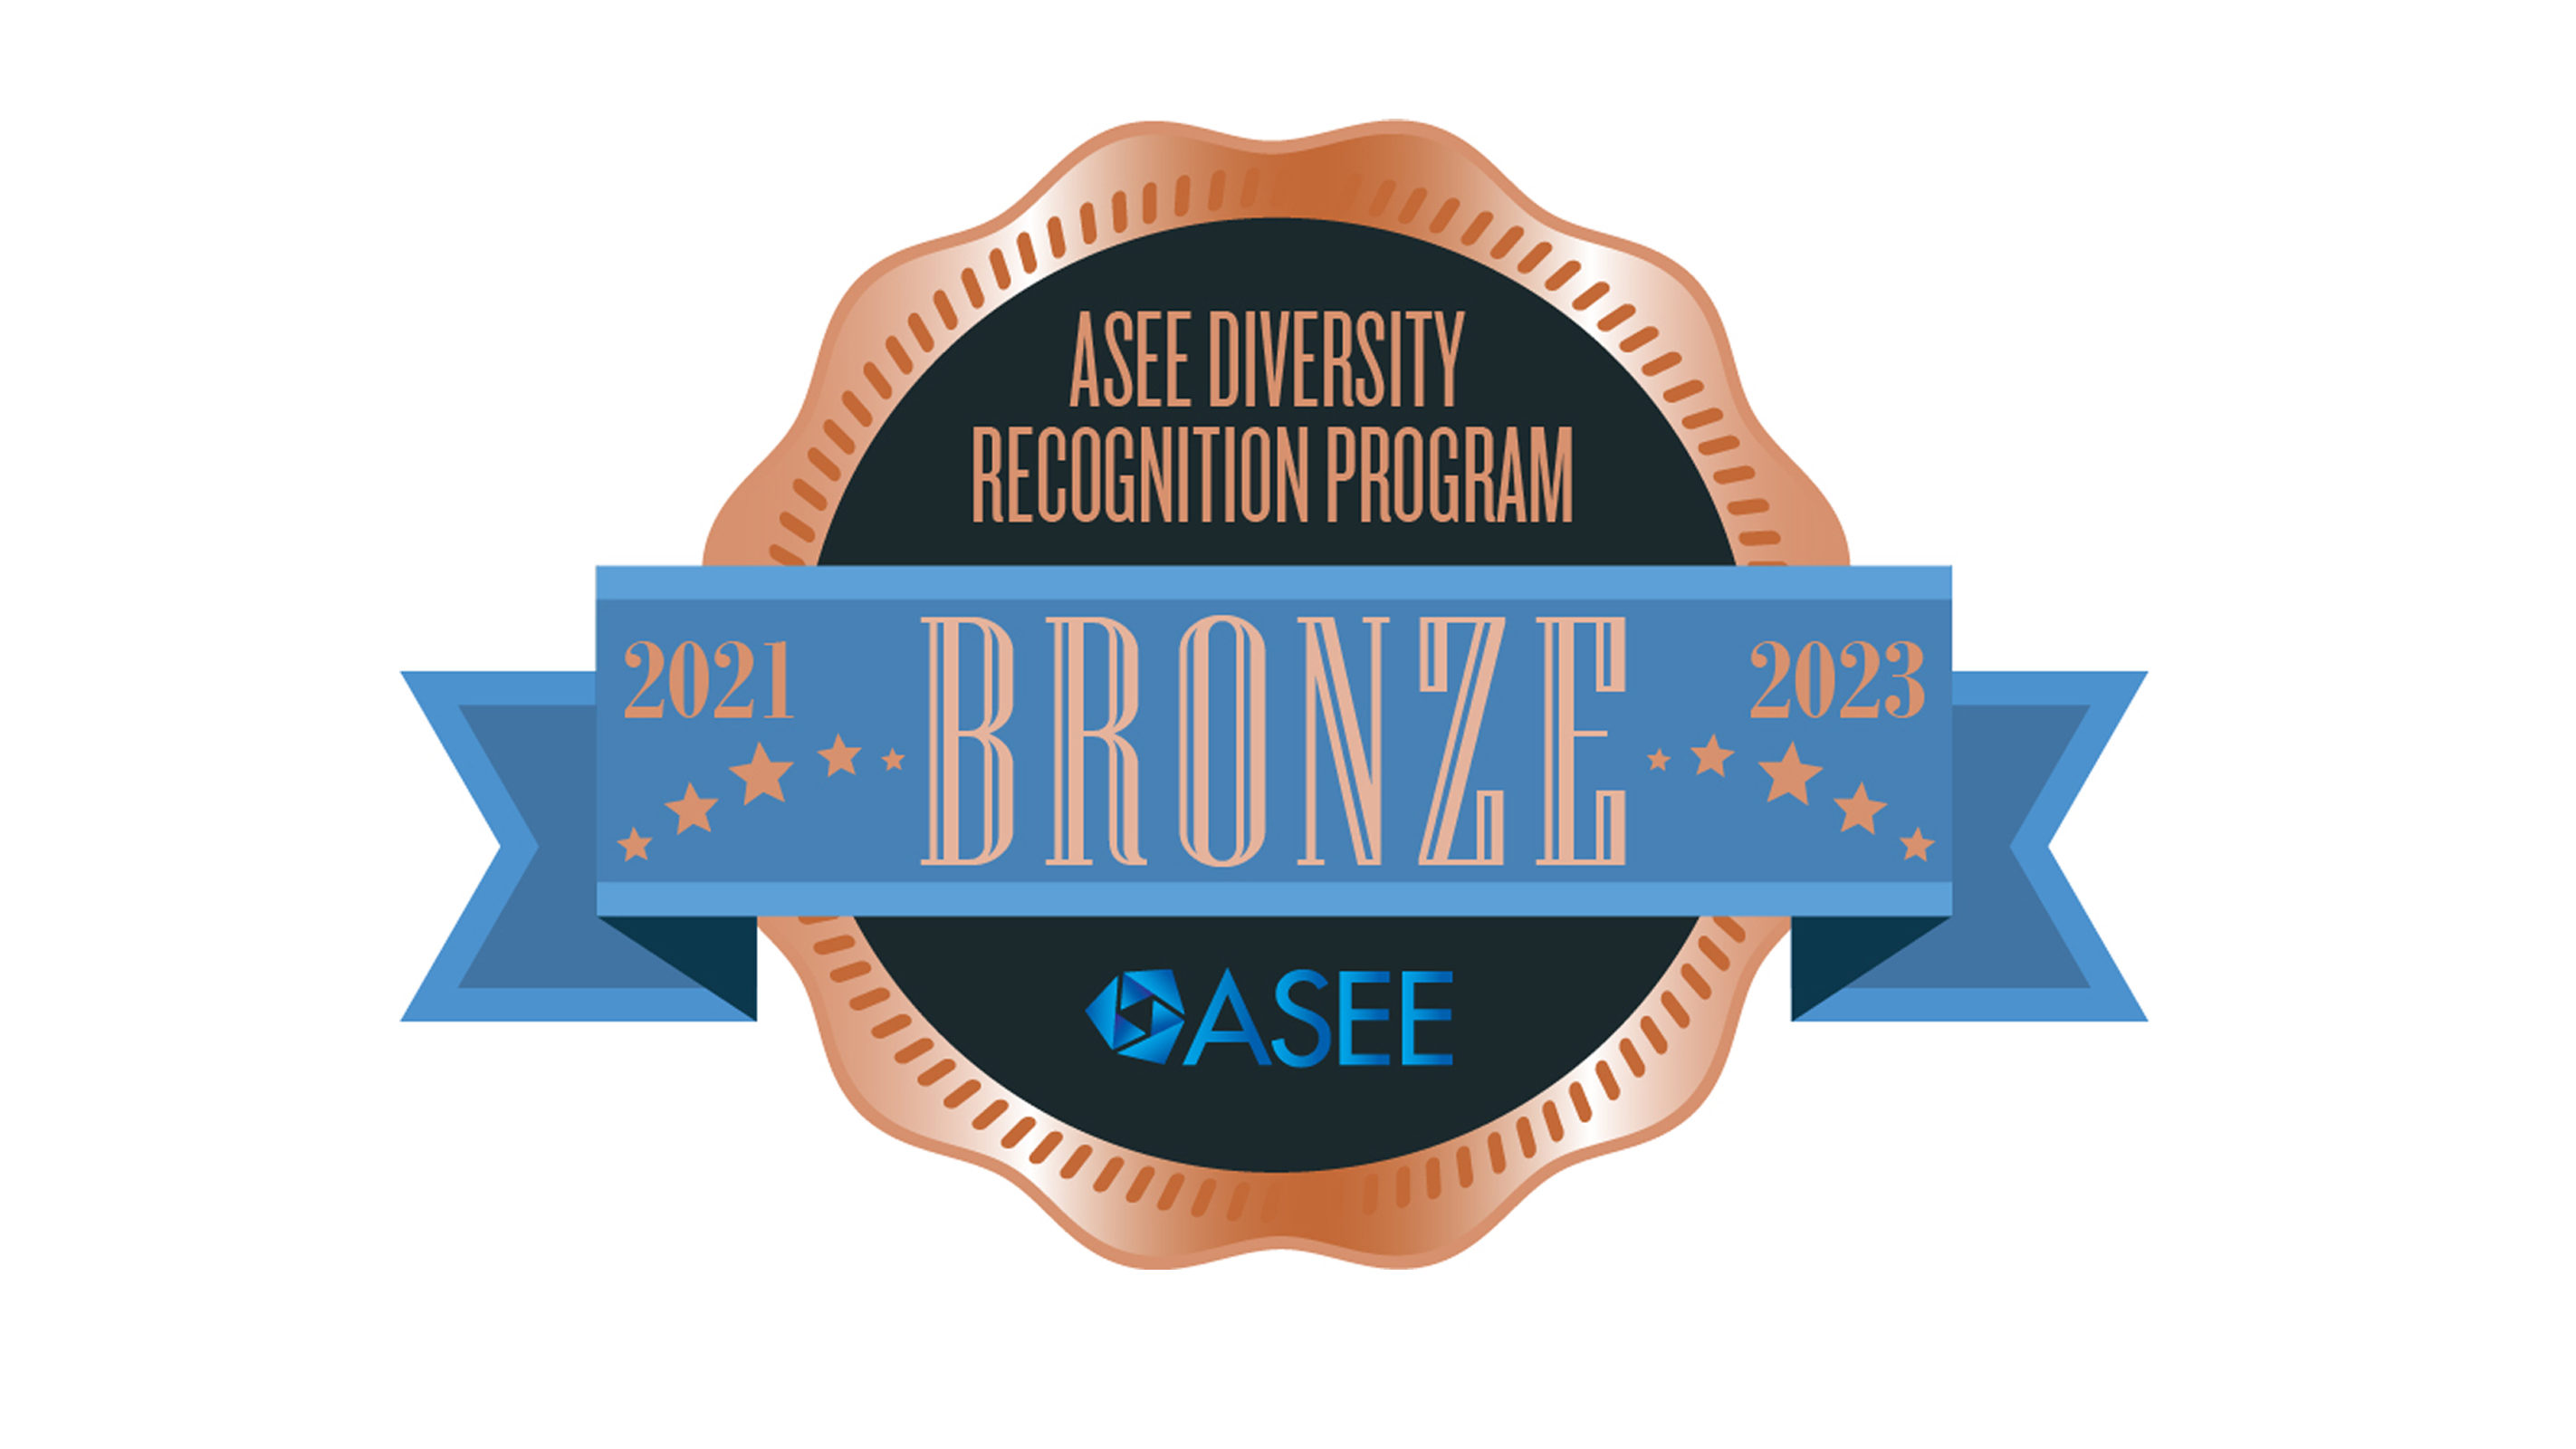 ASEE Diversity Recognition Program Bronze badge